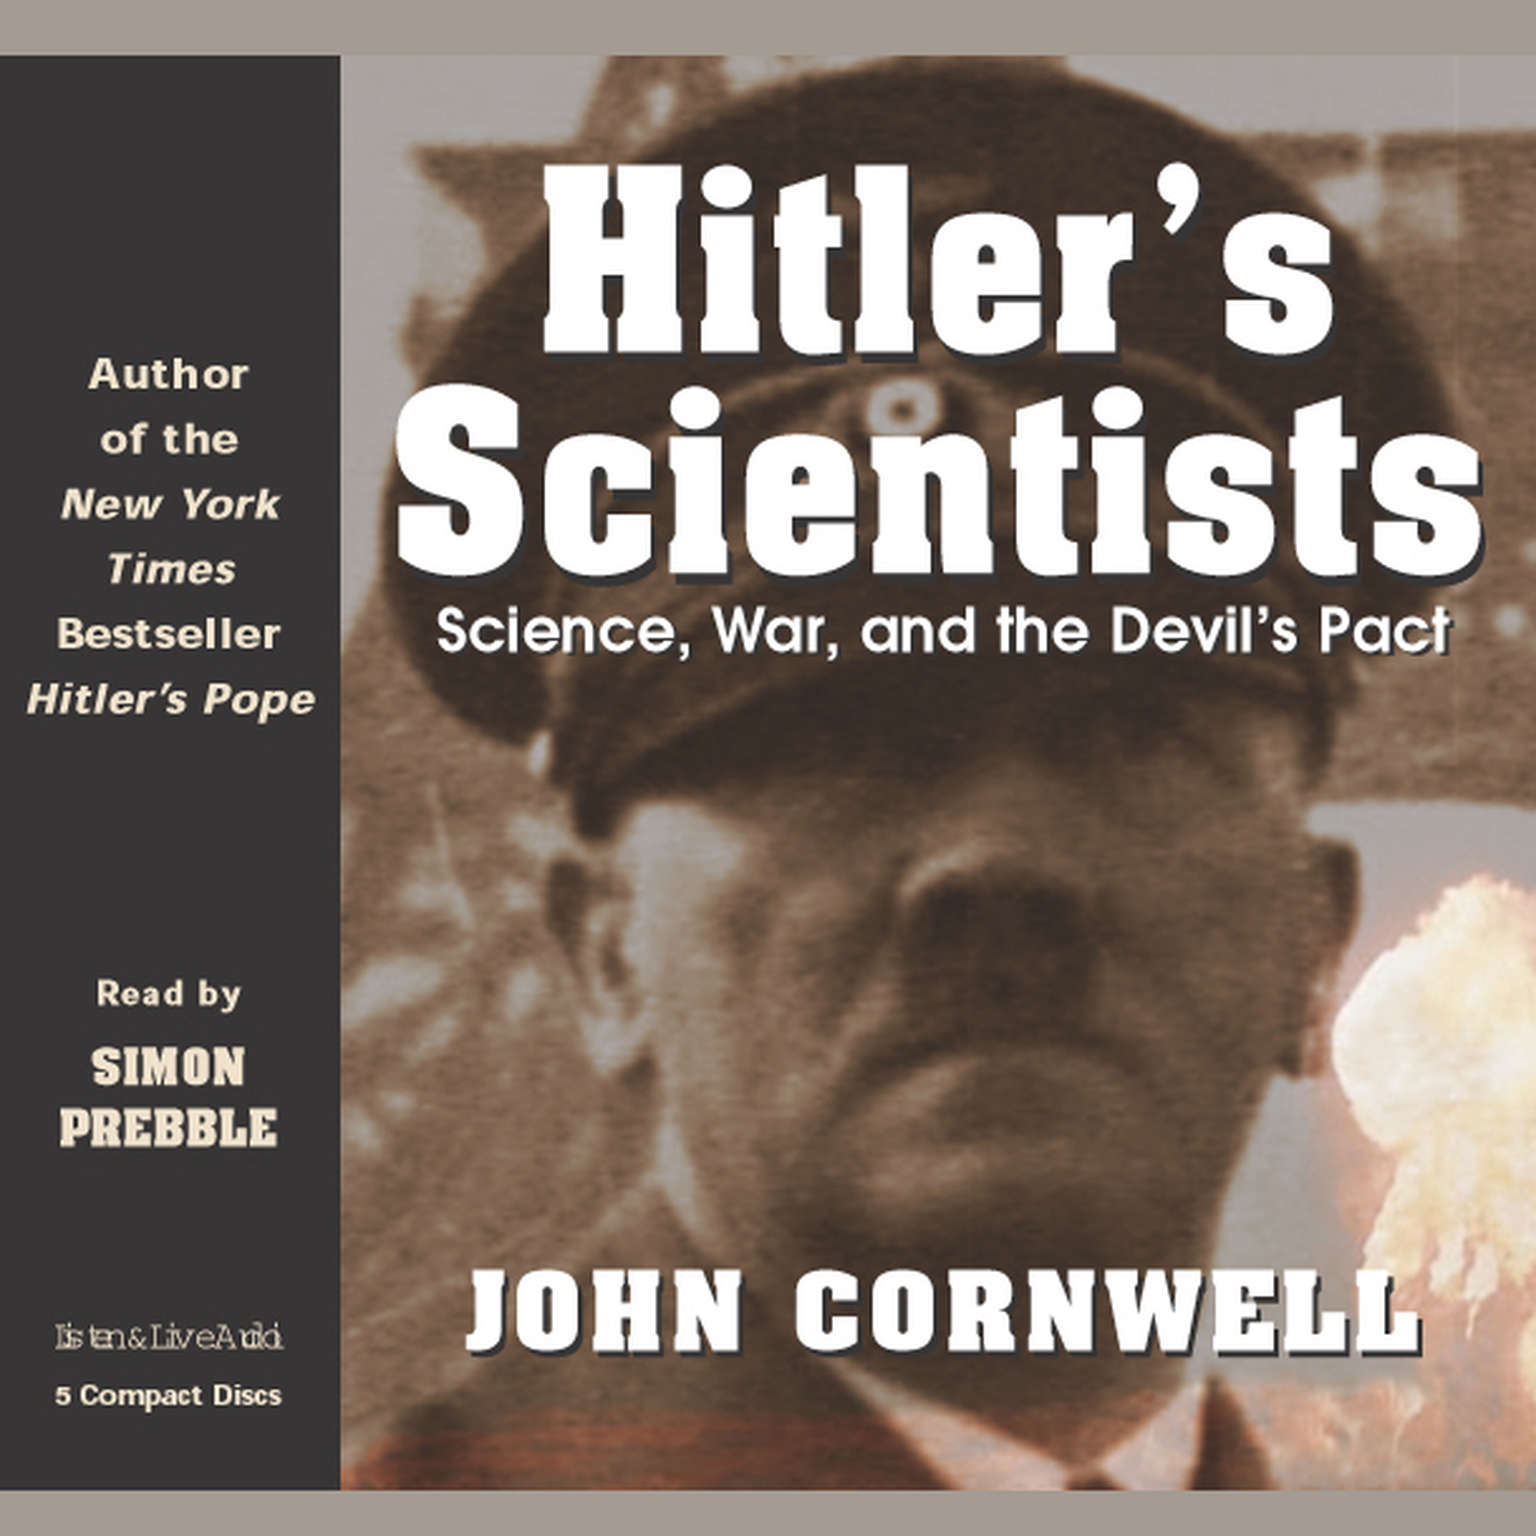 Printable Hitler's Scientists: Science, War, and the Devil's Pact Audiobook Cover Art